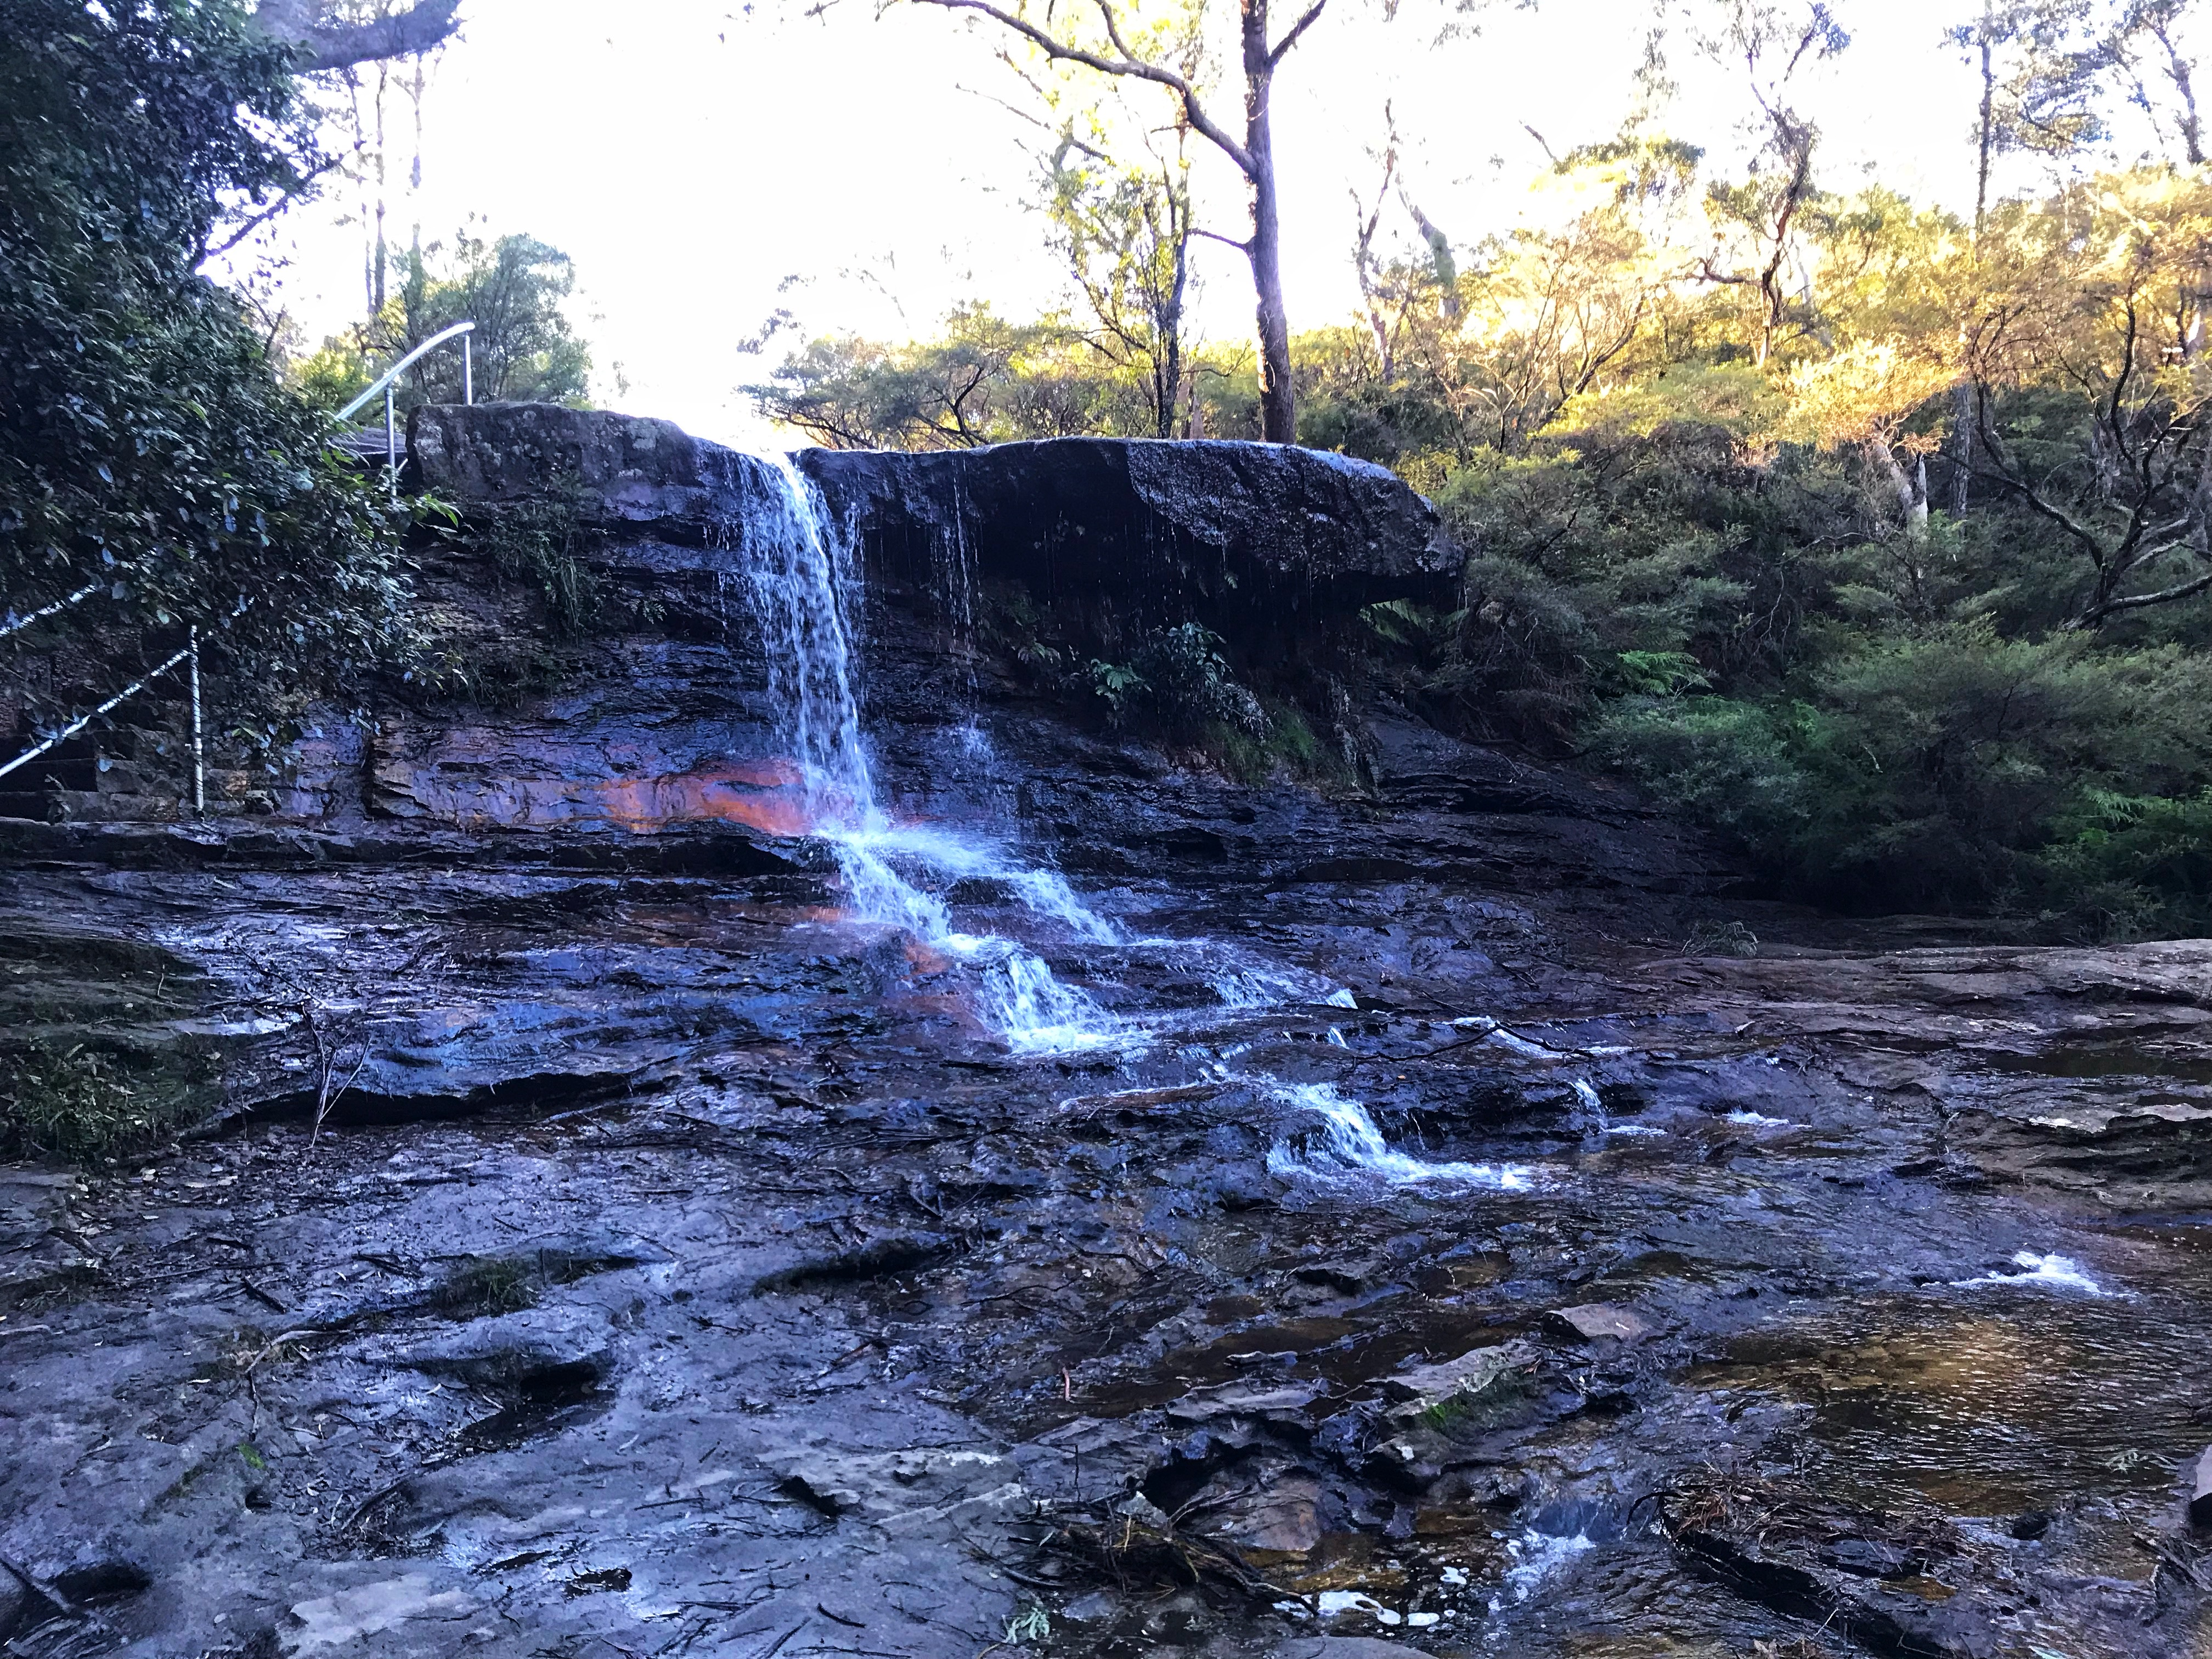 Undercliff-Overcliff walk Wentworth Falls